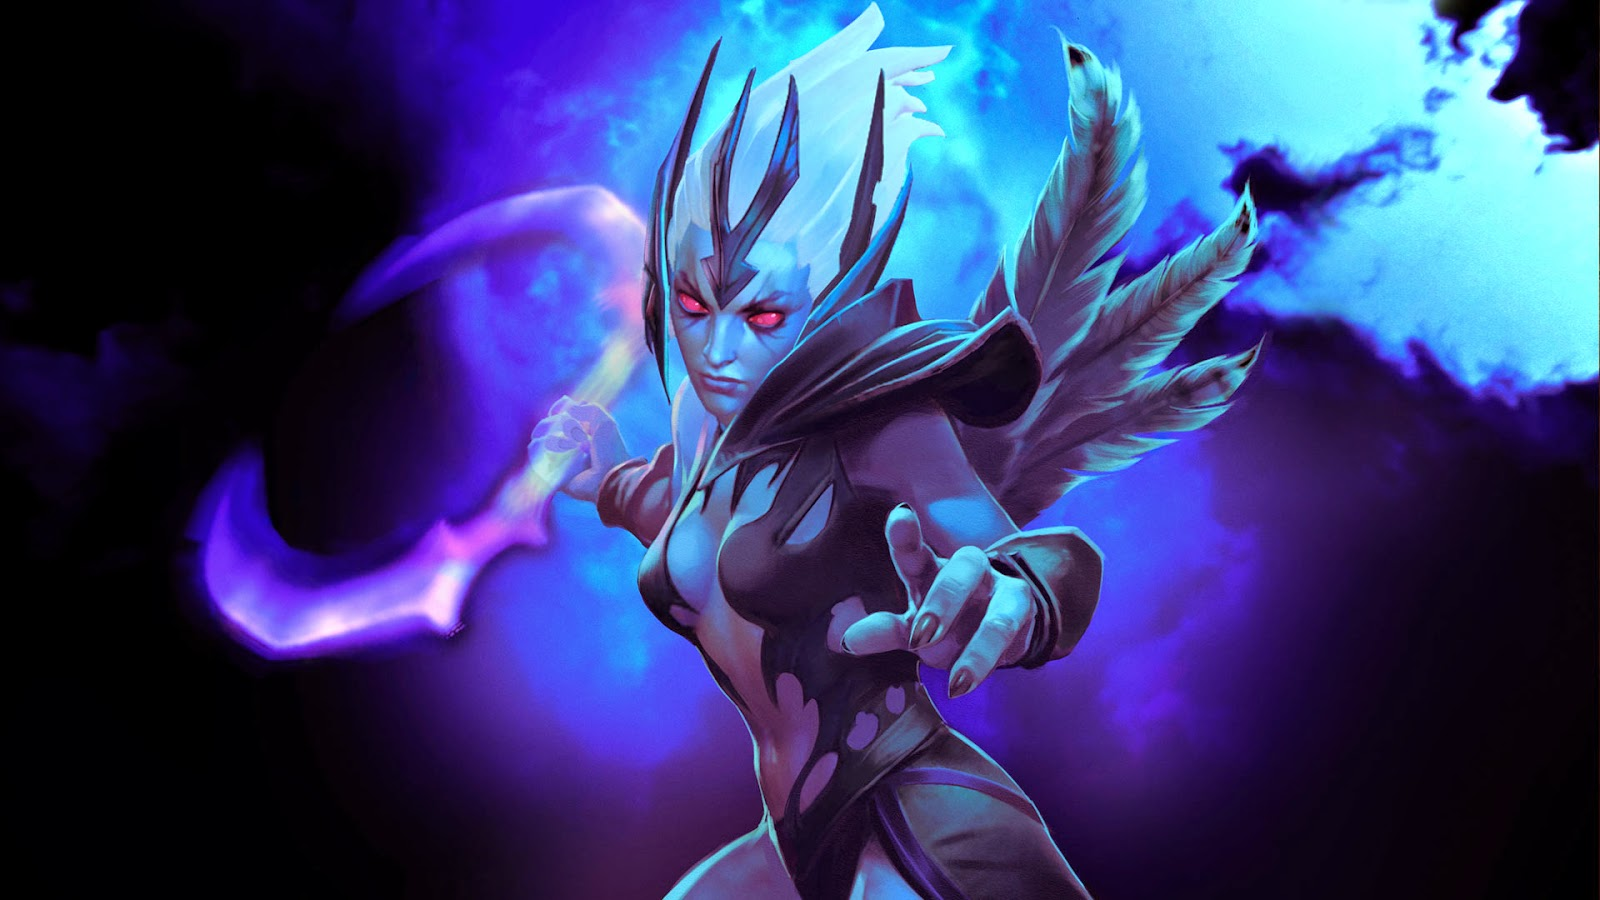 Dota 2 wallpaper vengeful spirit card 8 by eliascapo112 1920x1080